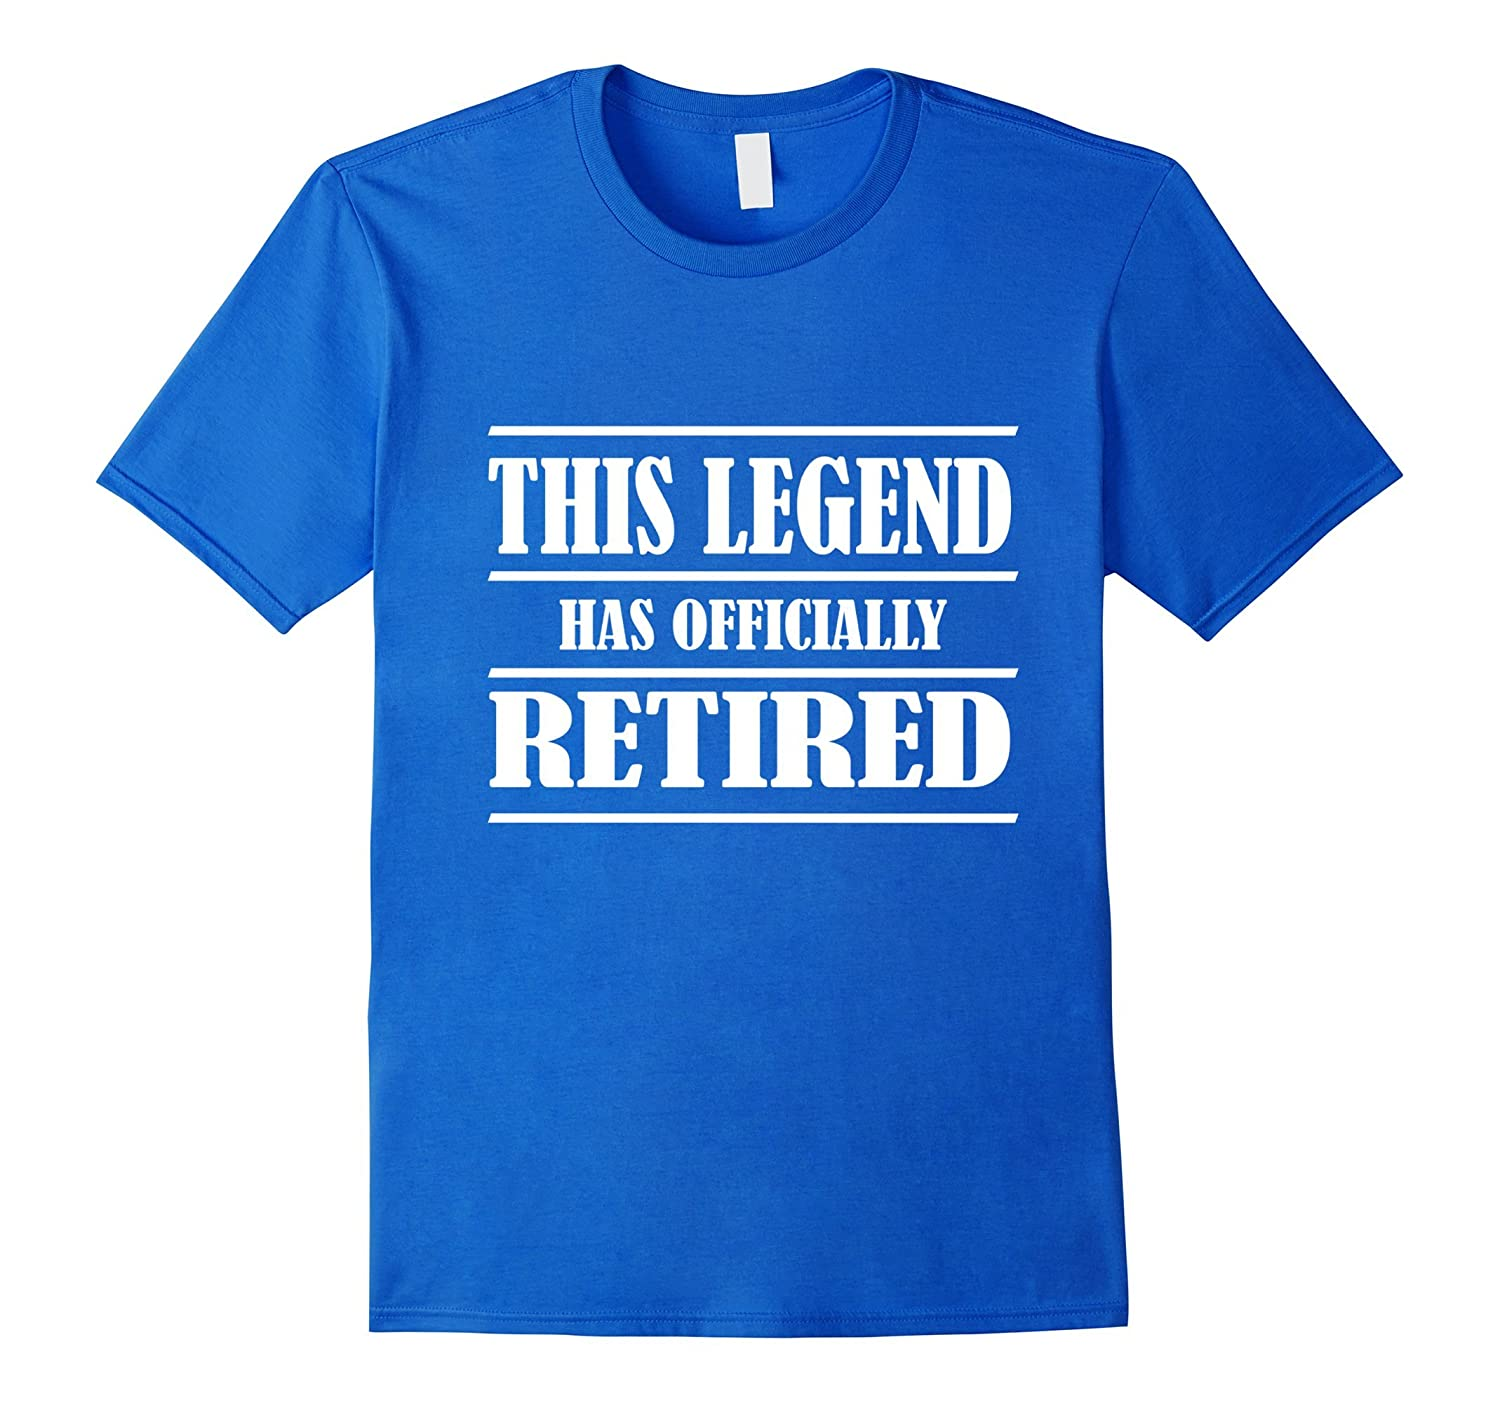 599c603a This Legend has Officially Retired T Shirt-TD – theteejob